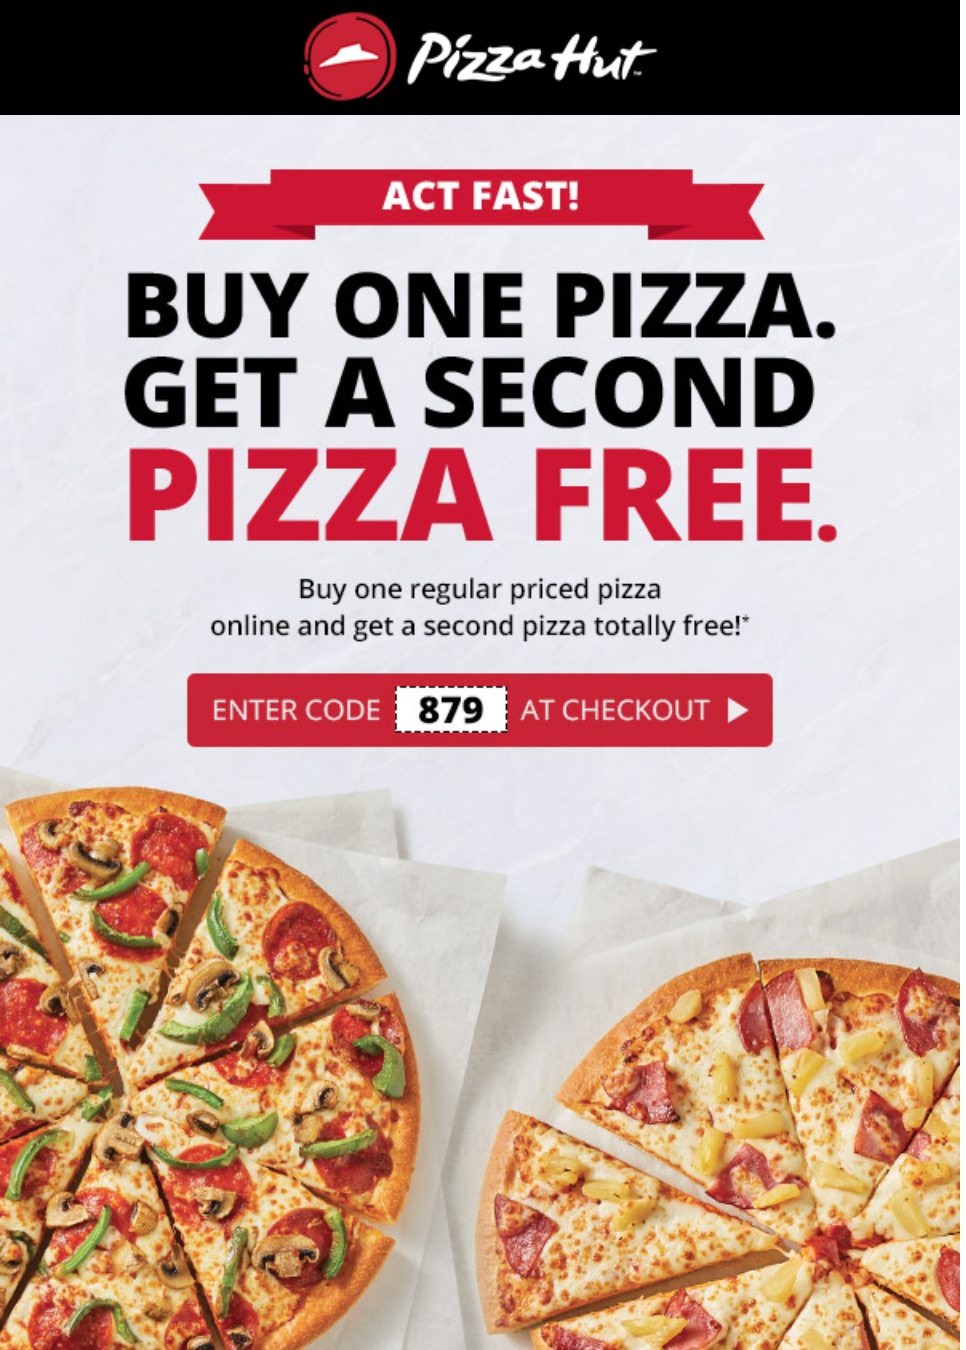 Pizza Hut Canada Promotions Buy One Pizza Get Another One Free Canadian Freebies Coupons Deals Bargains Flyers Contests Canada